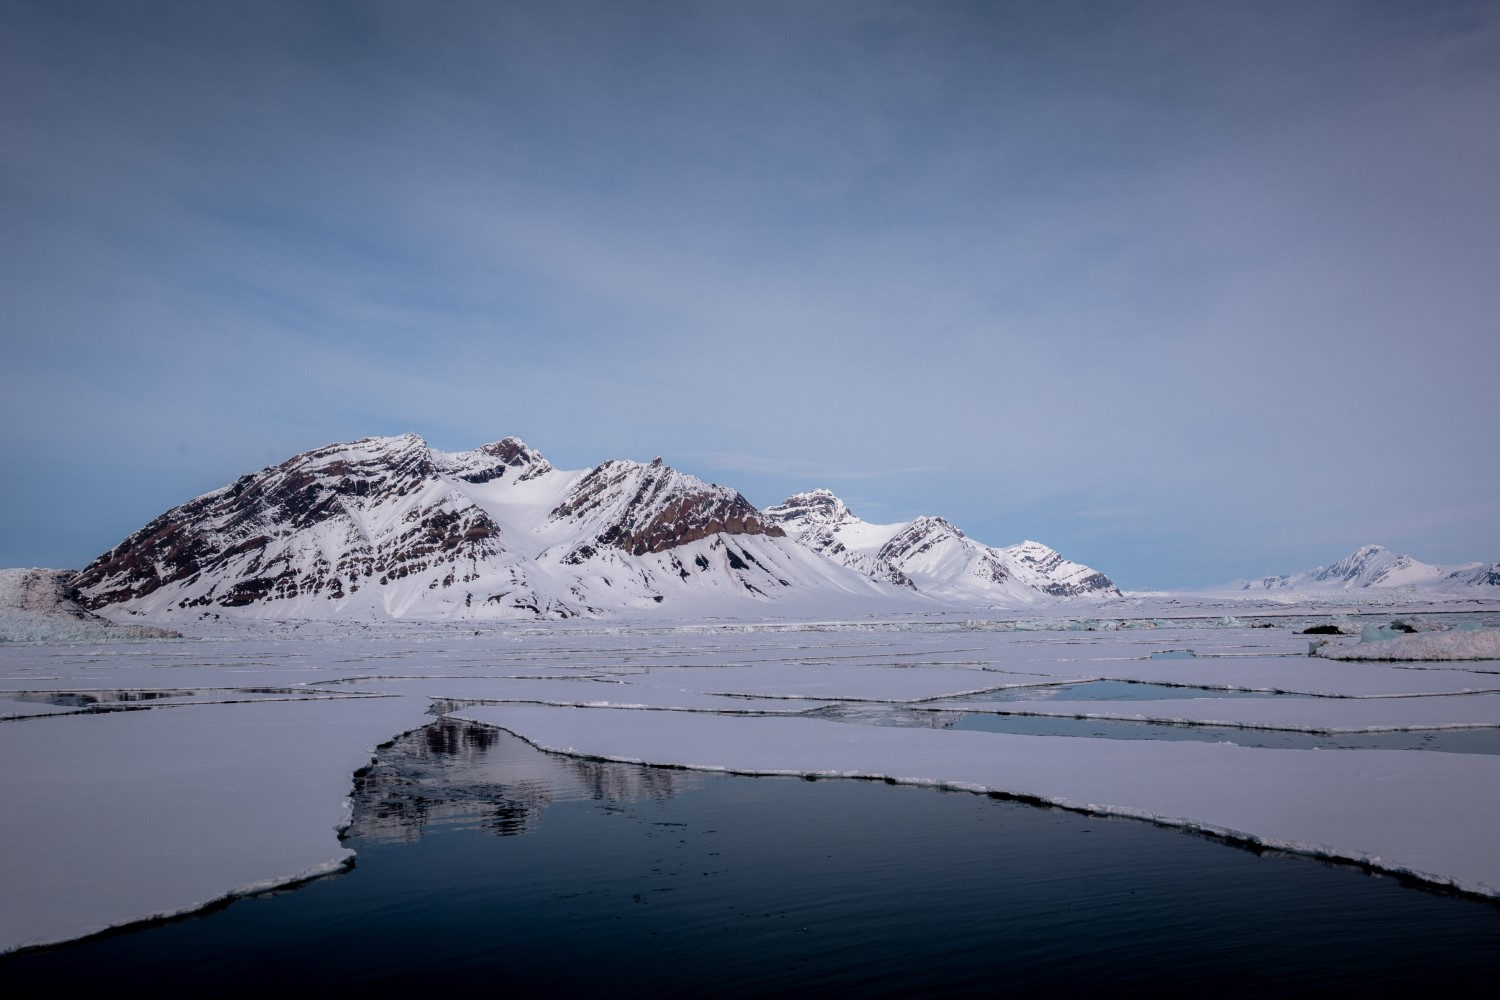 Landscape of Svalbard in the Arctic Ocean